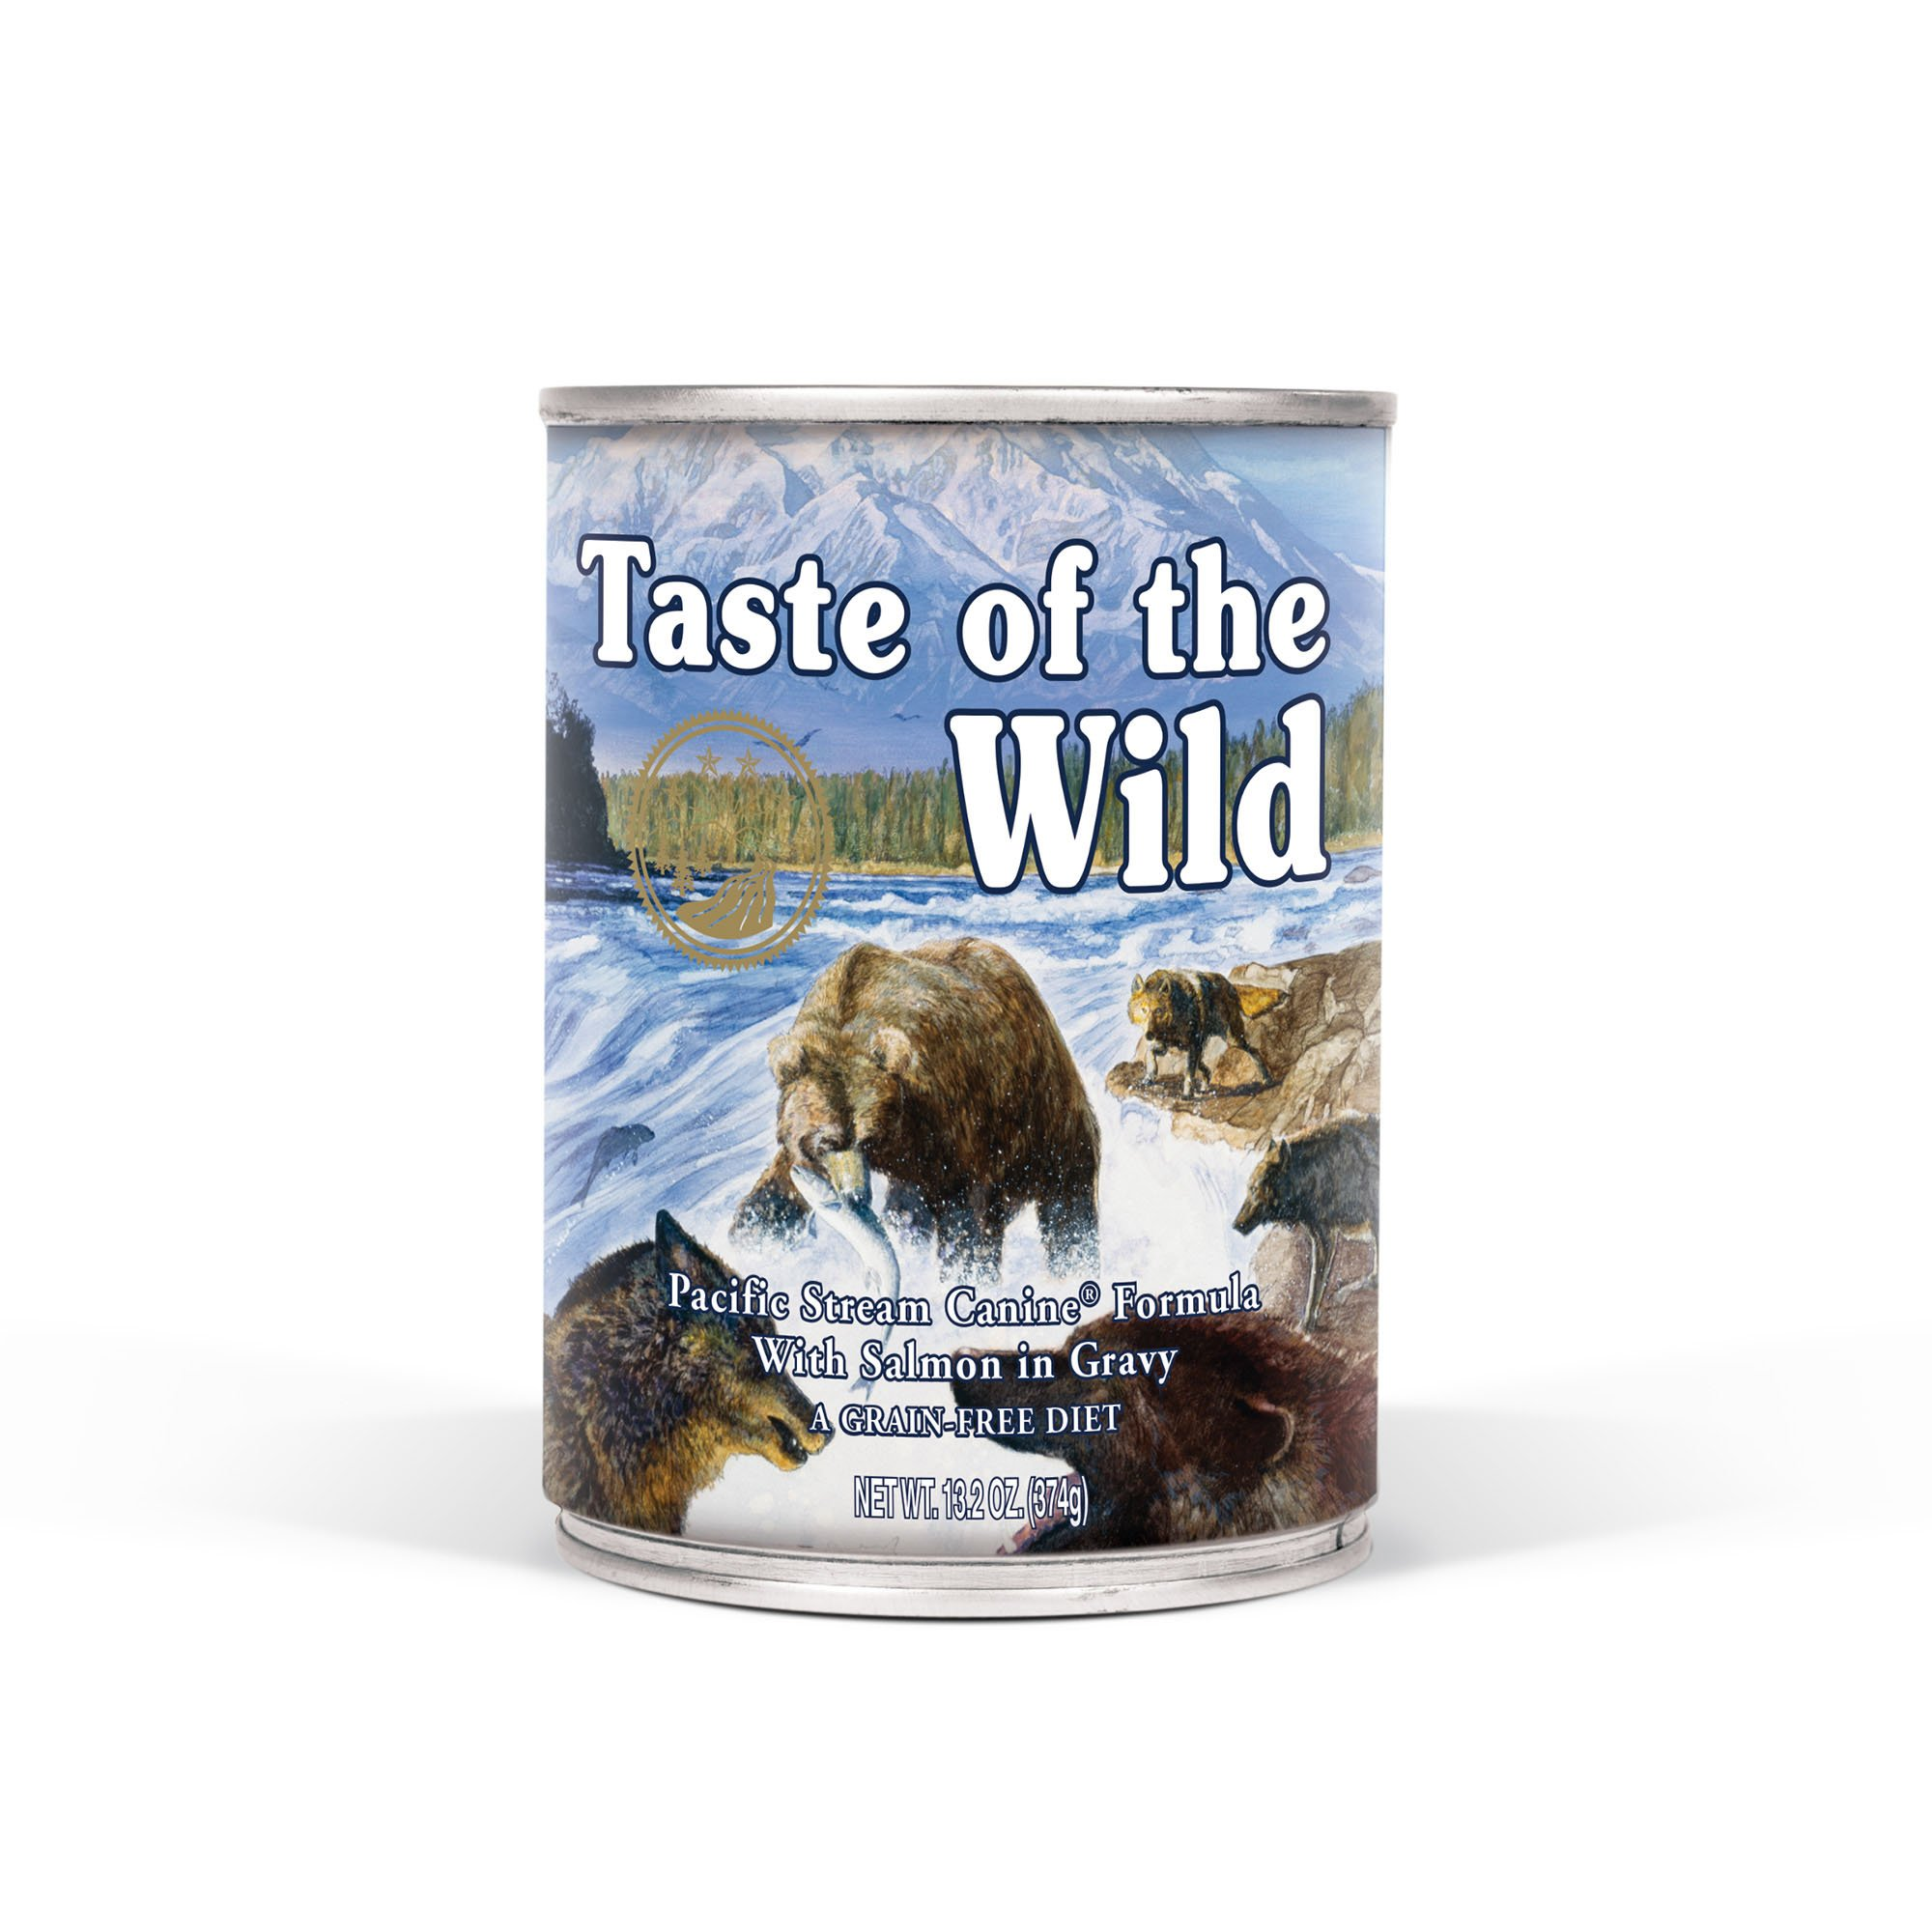 Taste of the Wild Pacific Stream Grain-Free Wet Canned Dog Food with Smoked Salmon 13.2oz, Case of 12